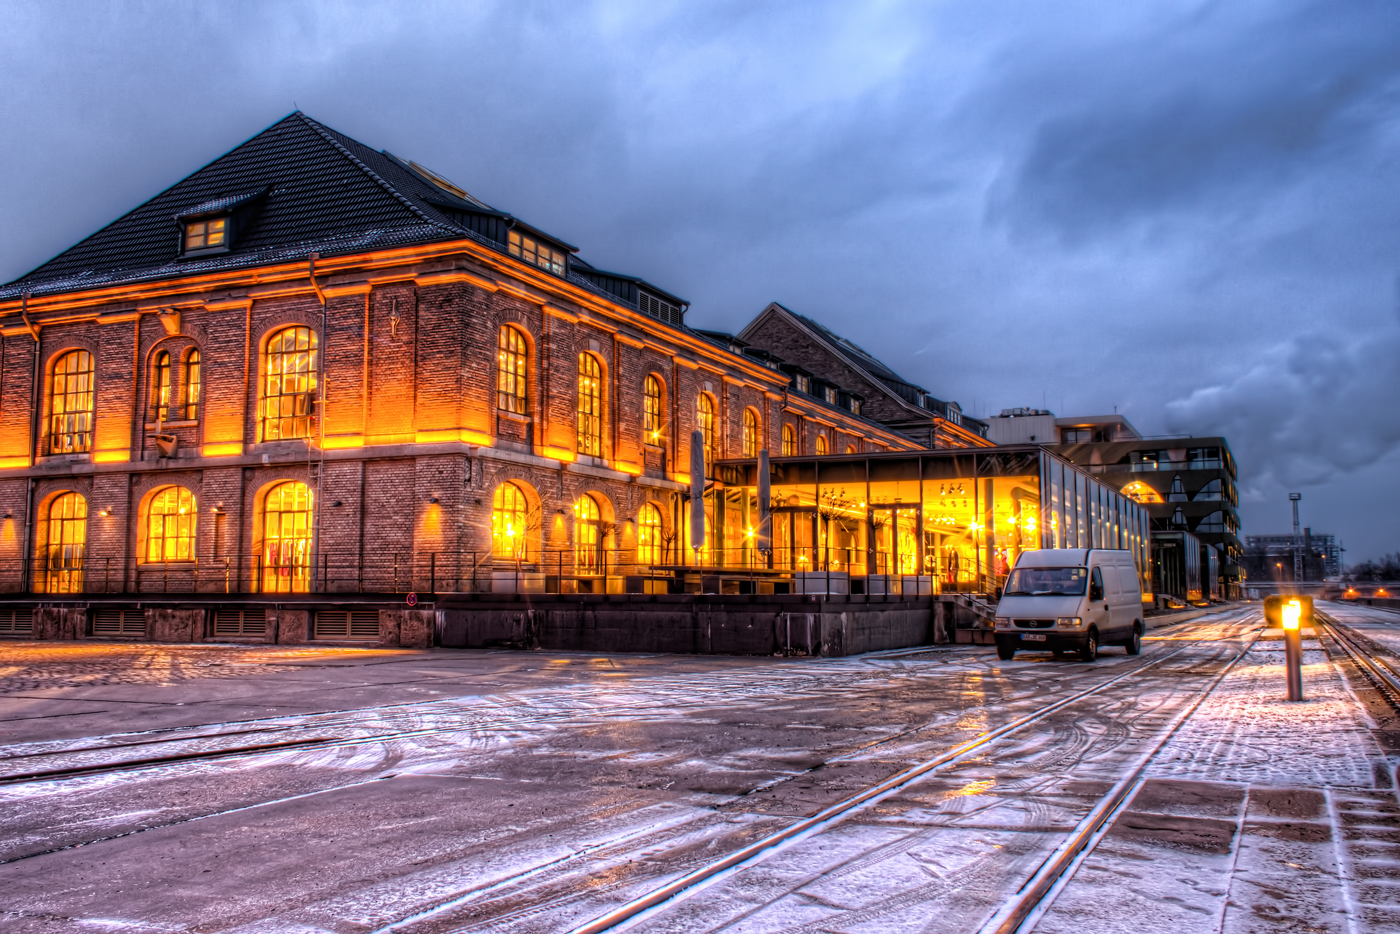 Old Port in Treptow, Berlin (HDR)